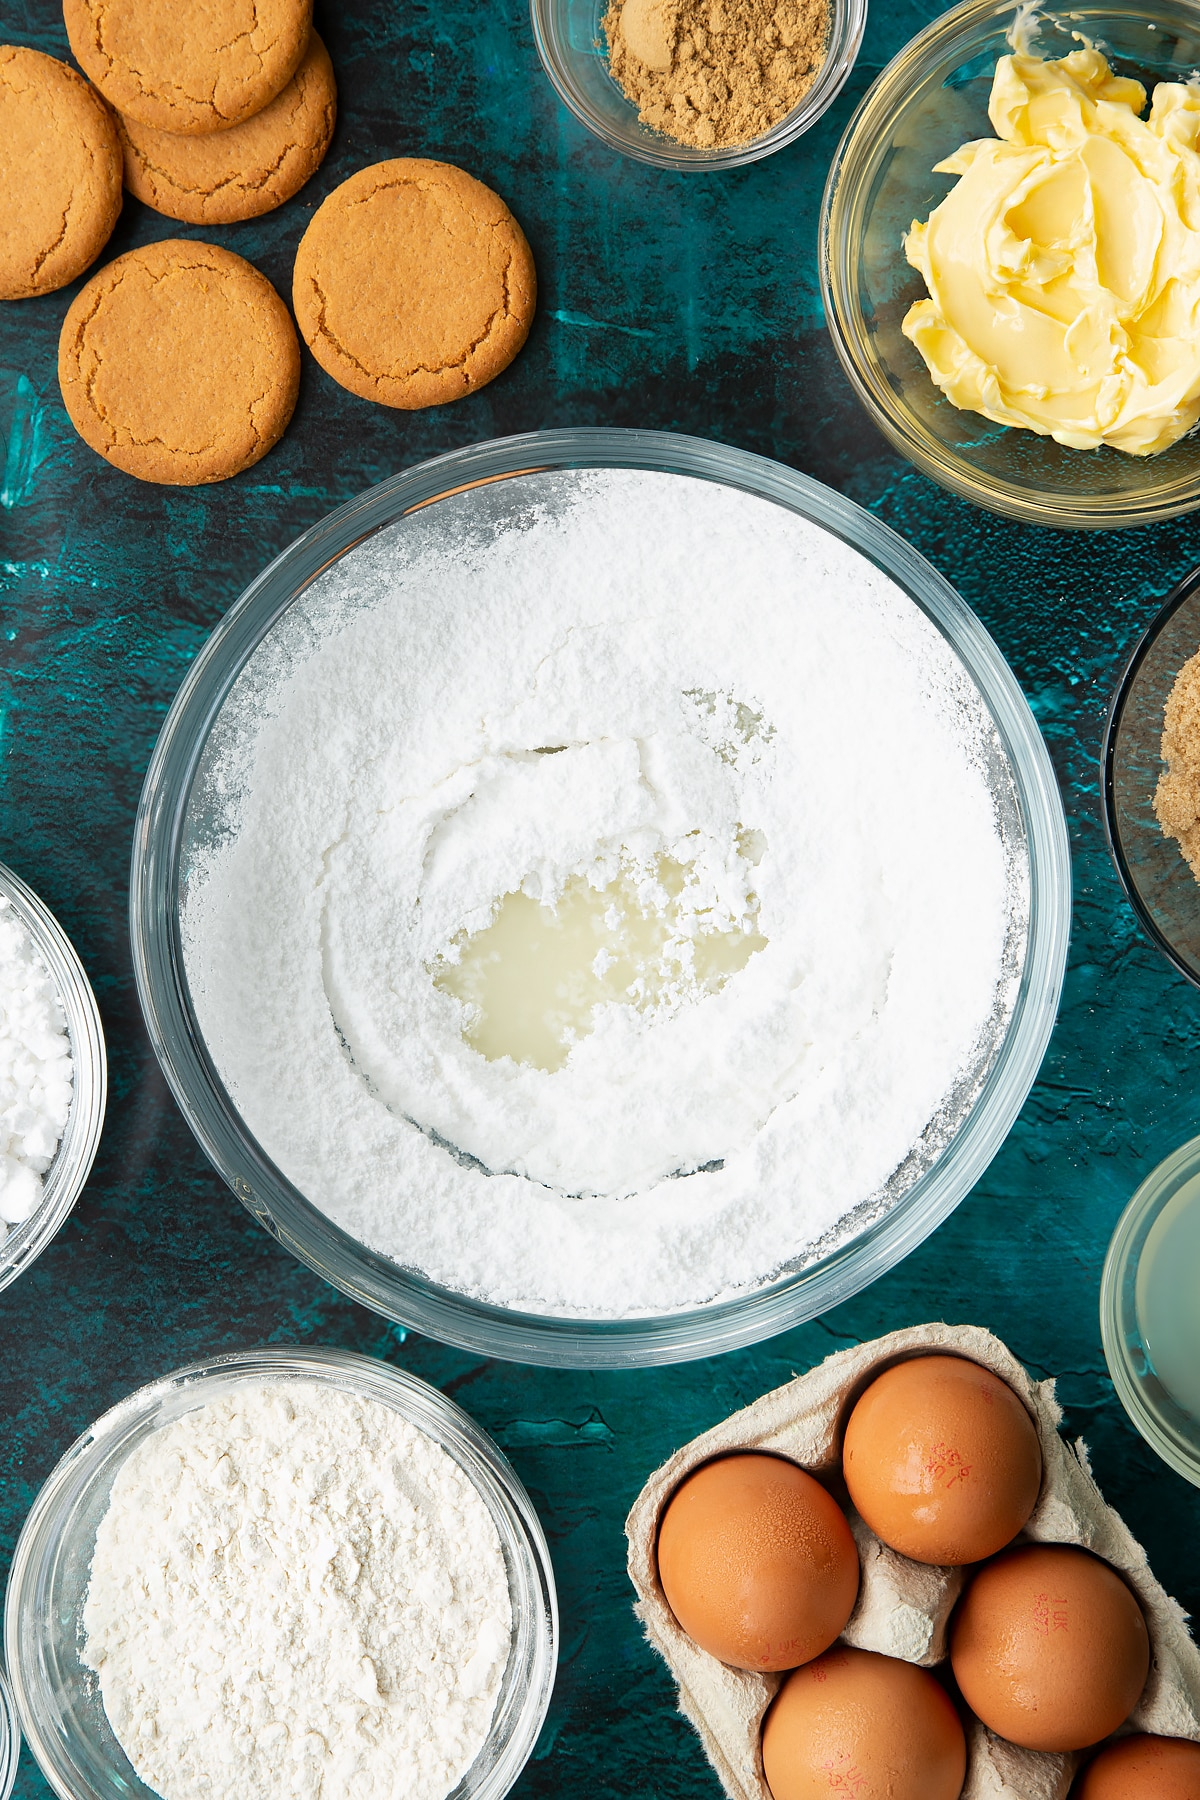 Icing sugar and lemon juice in a glass mixing bowl. Ingredients to make gingerbread donuts surround the bowl.